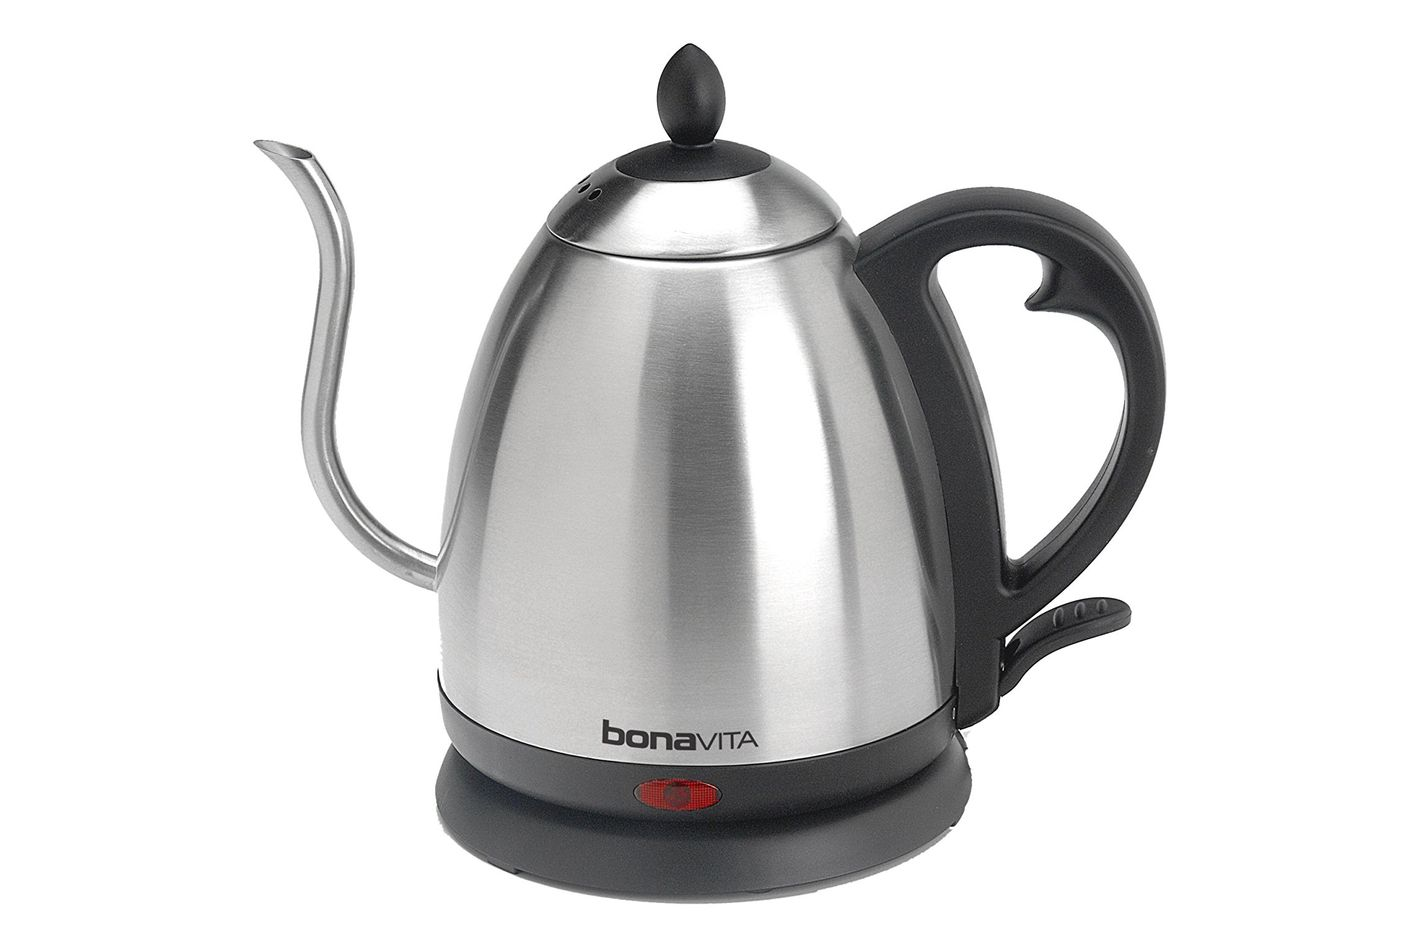 Bonavita 1.0L Electric Kettle Featuring Gooseneck Spout